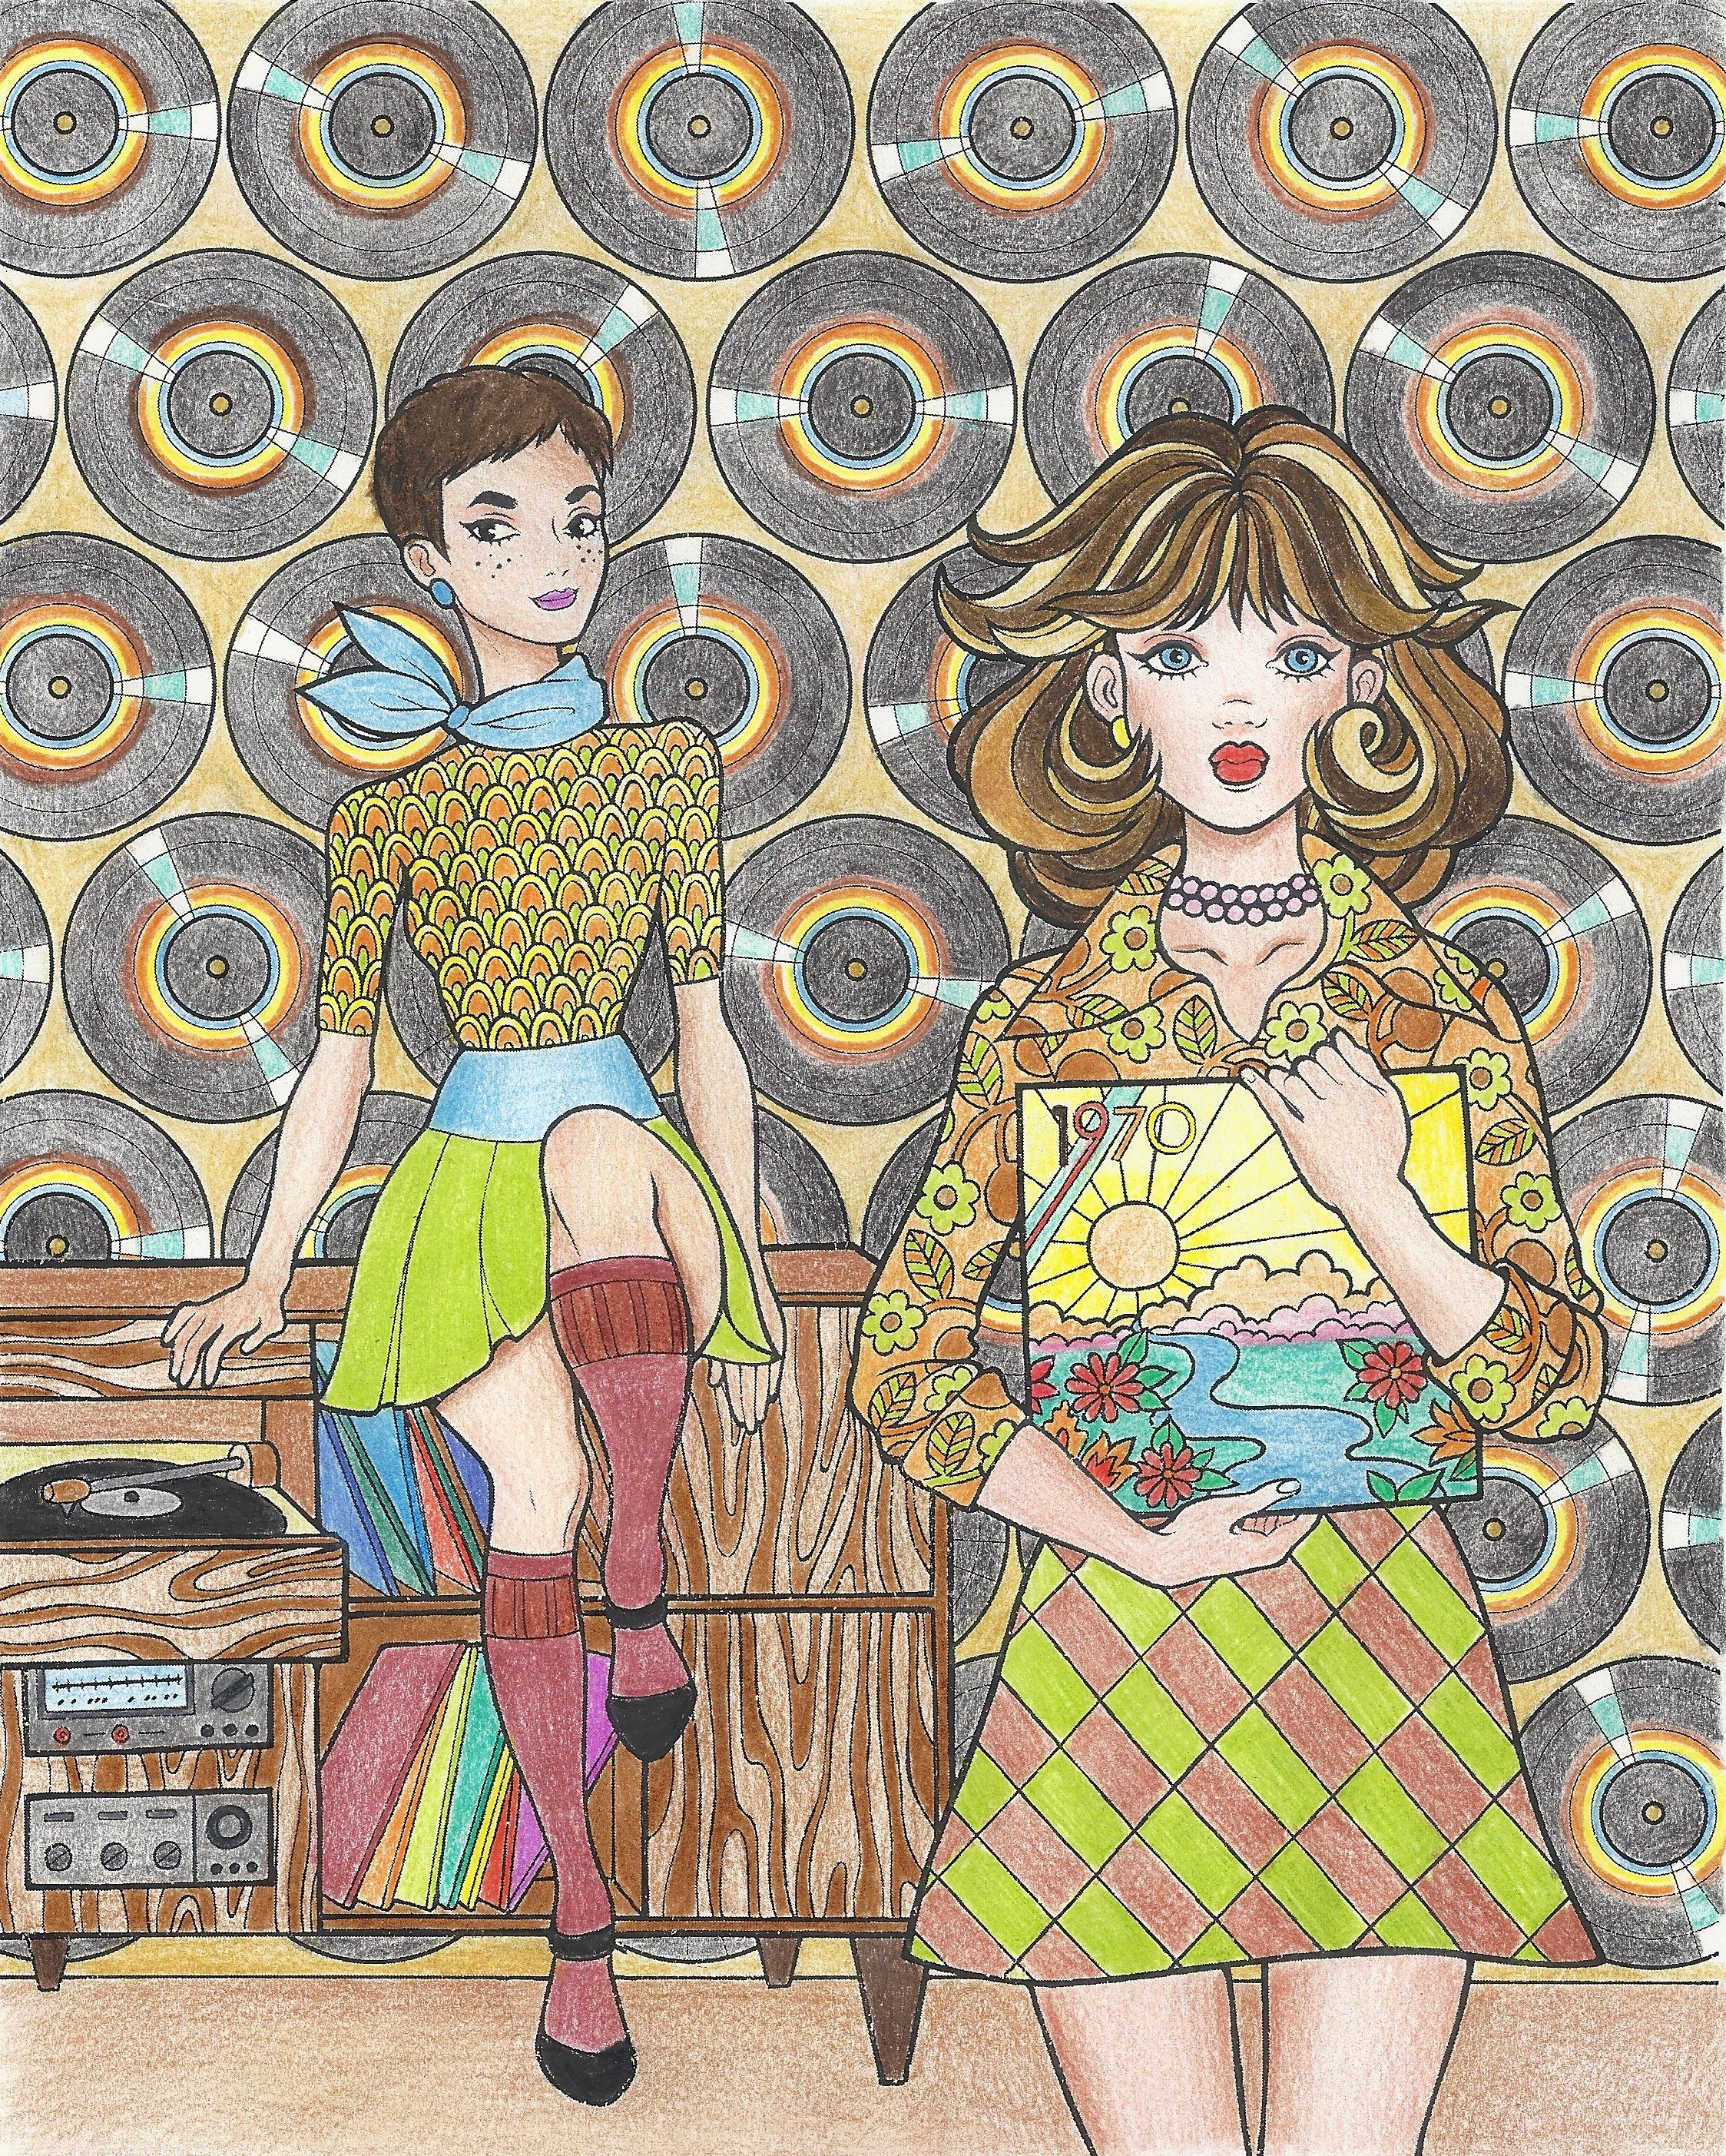 Colored Page From Groovy 70s Fashion Coloring Book For Adults Available On Amazon